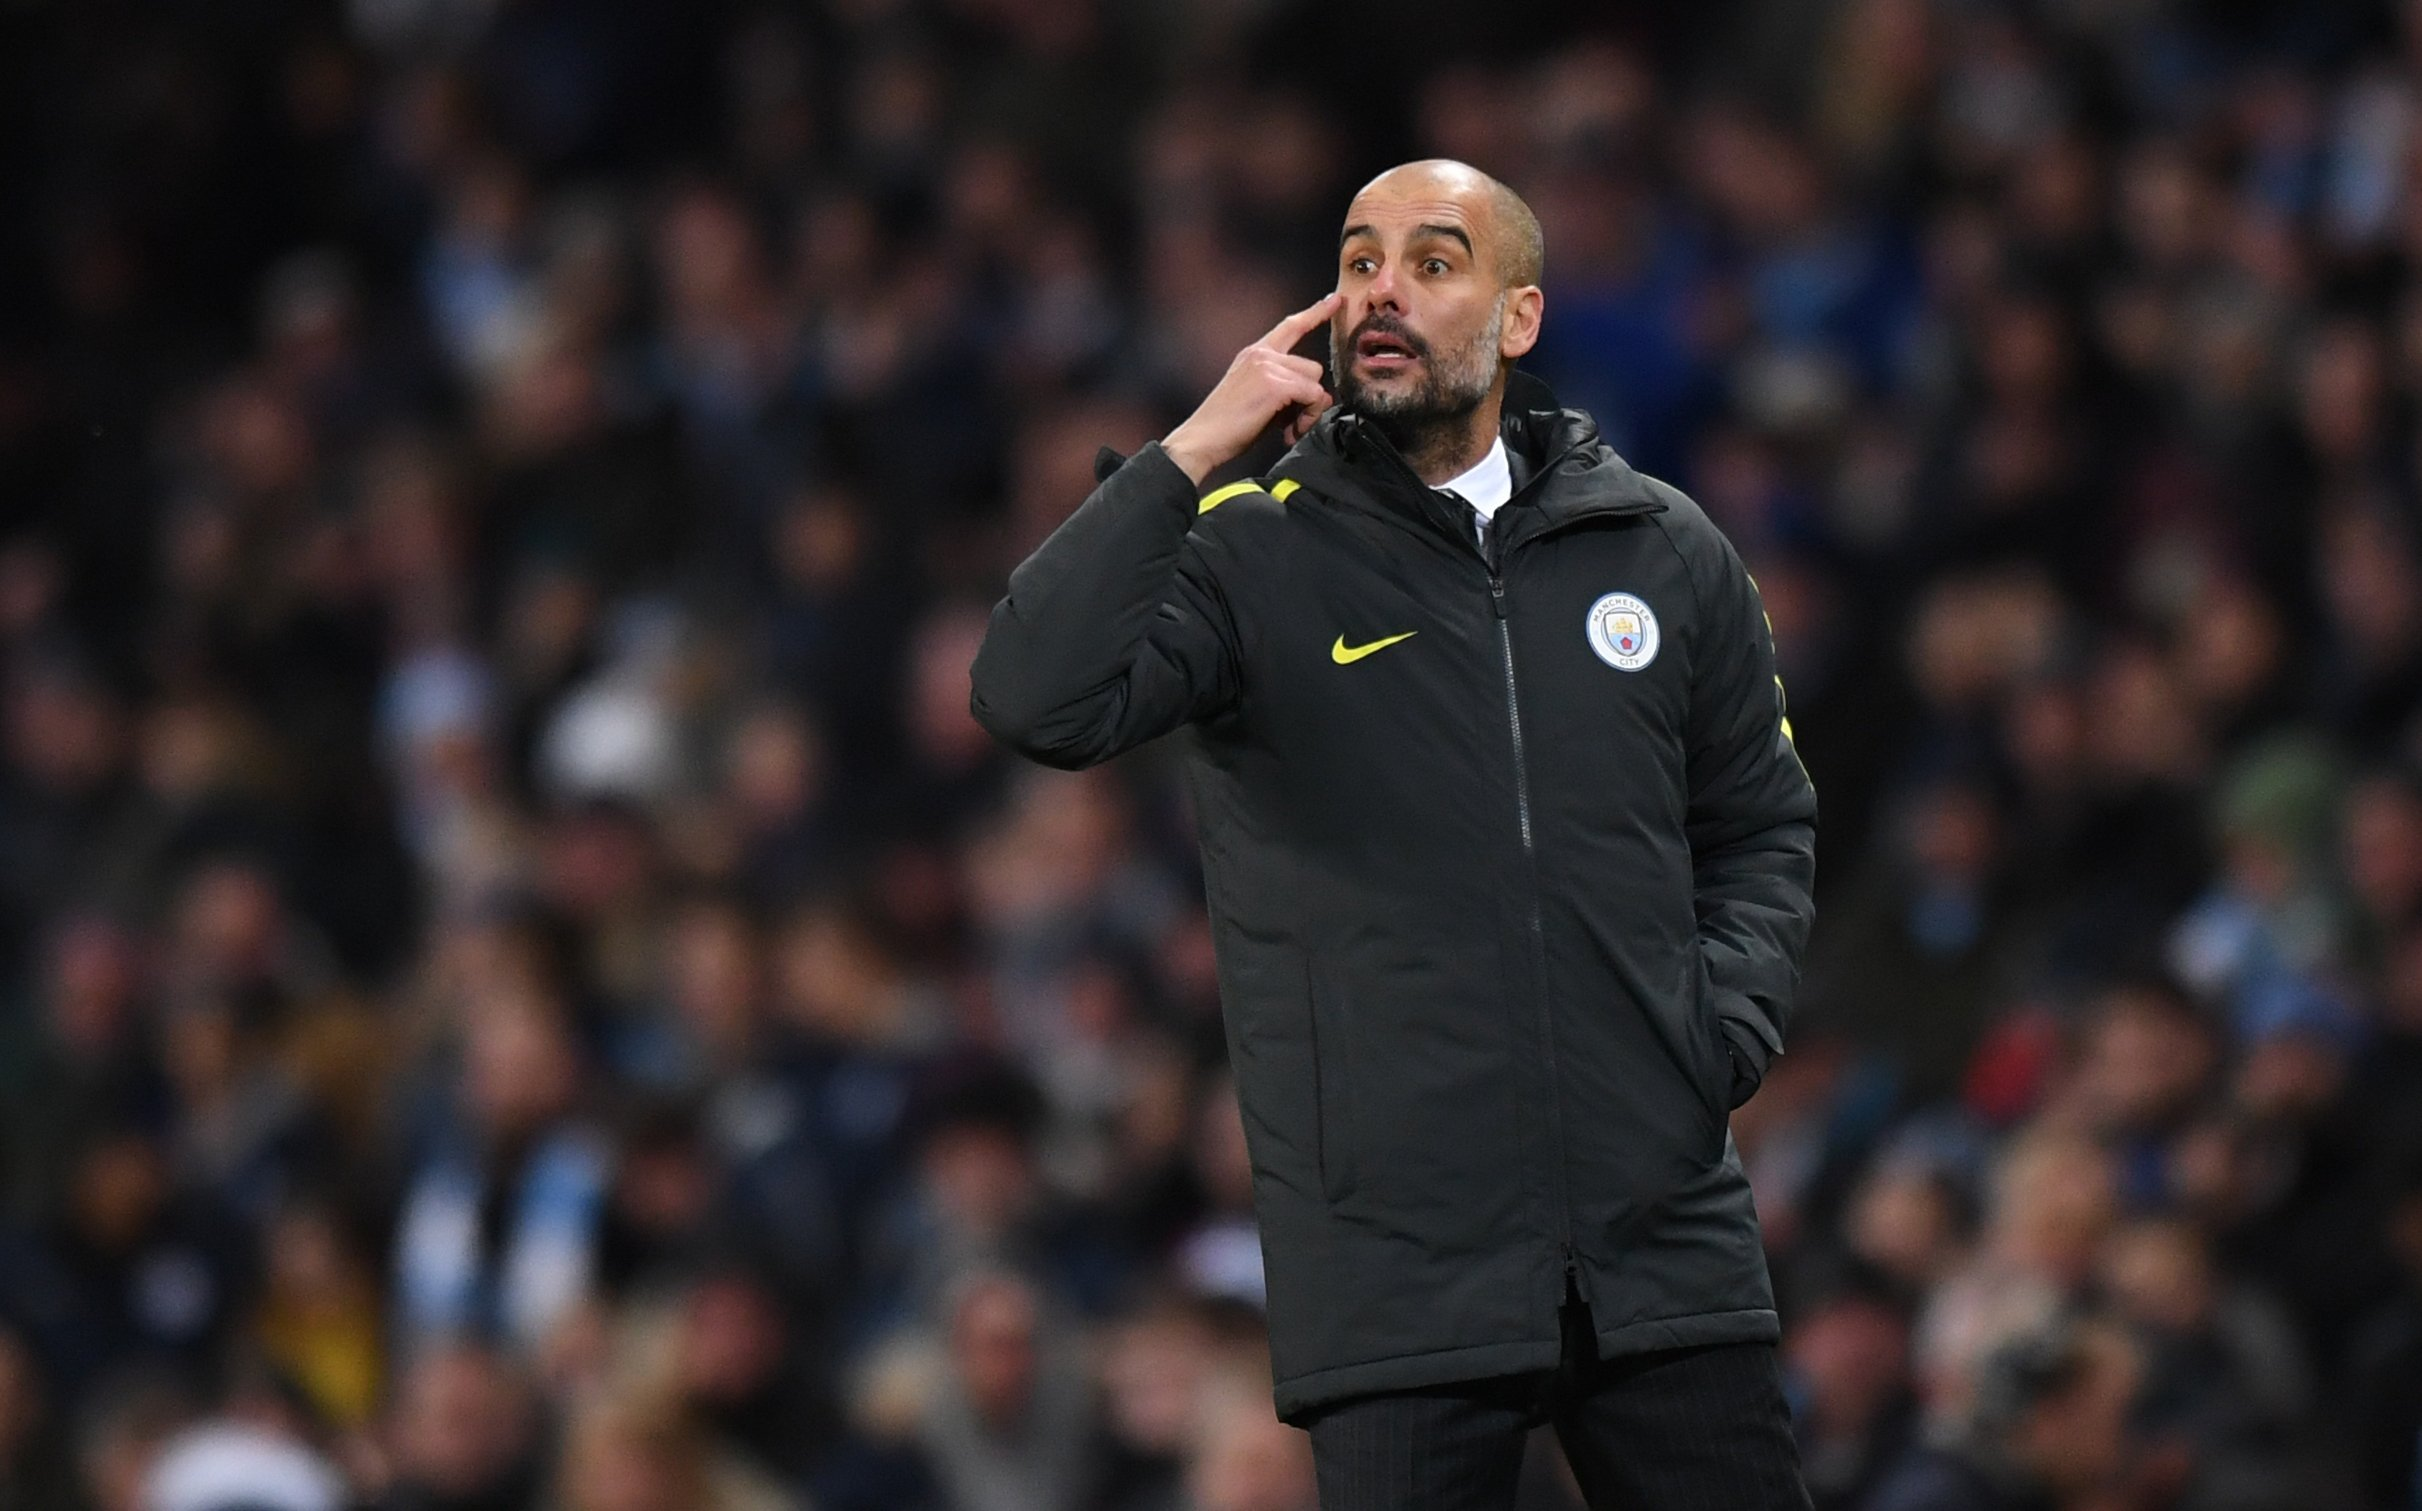 Premier League / Manchester City : Guardiola prolonge jusqu'en 2021 (Officiel)